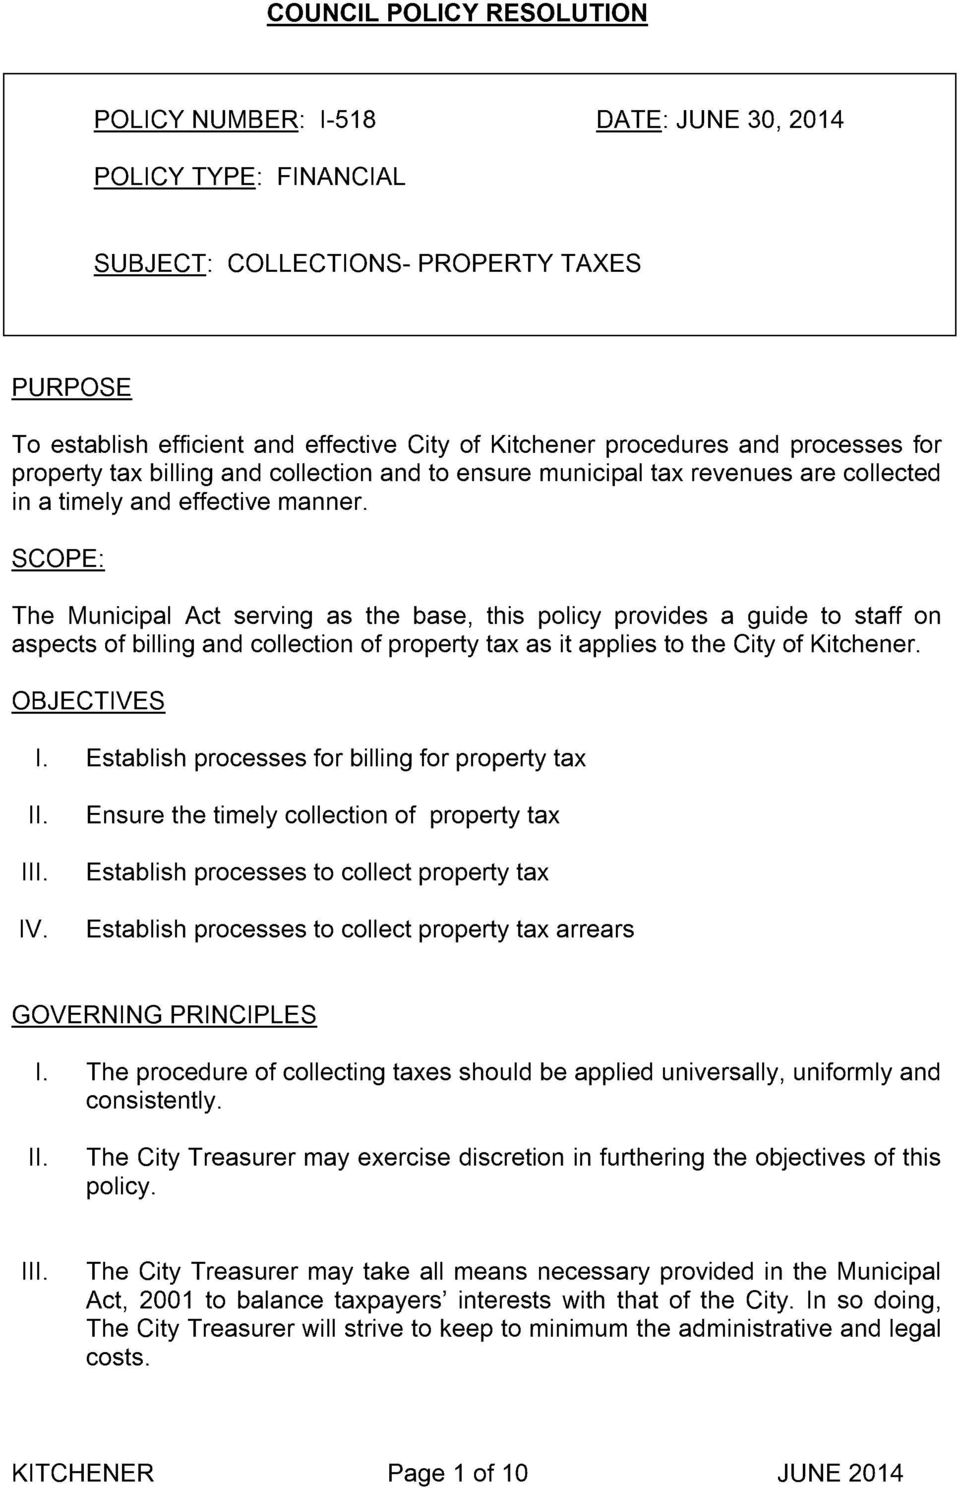 qrnpf- The Municipal Act serving as the base, this policy provides a guide to staff on aspects of billing and collection of property tax as it applies to the City of Kitchener.